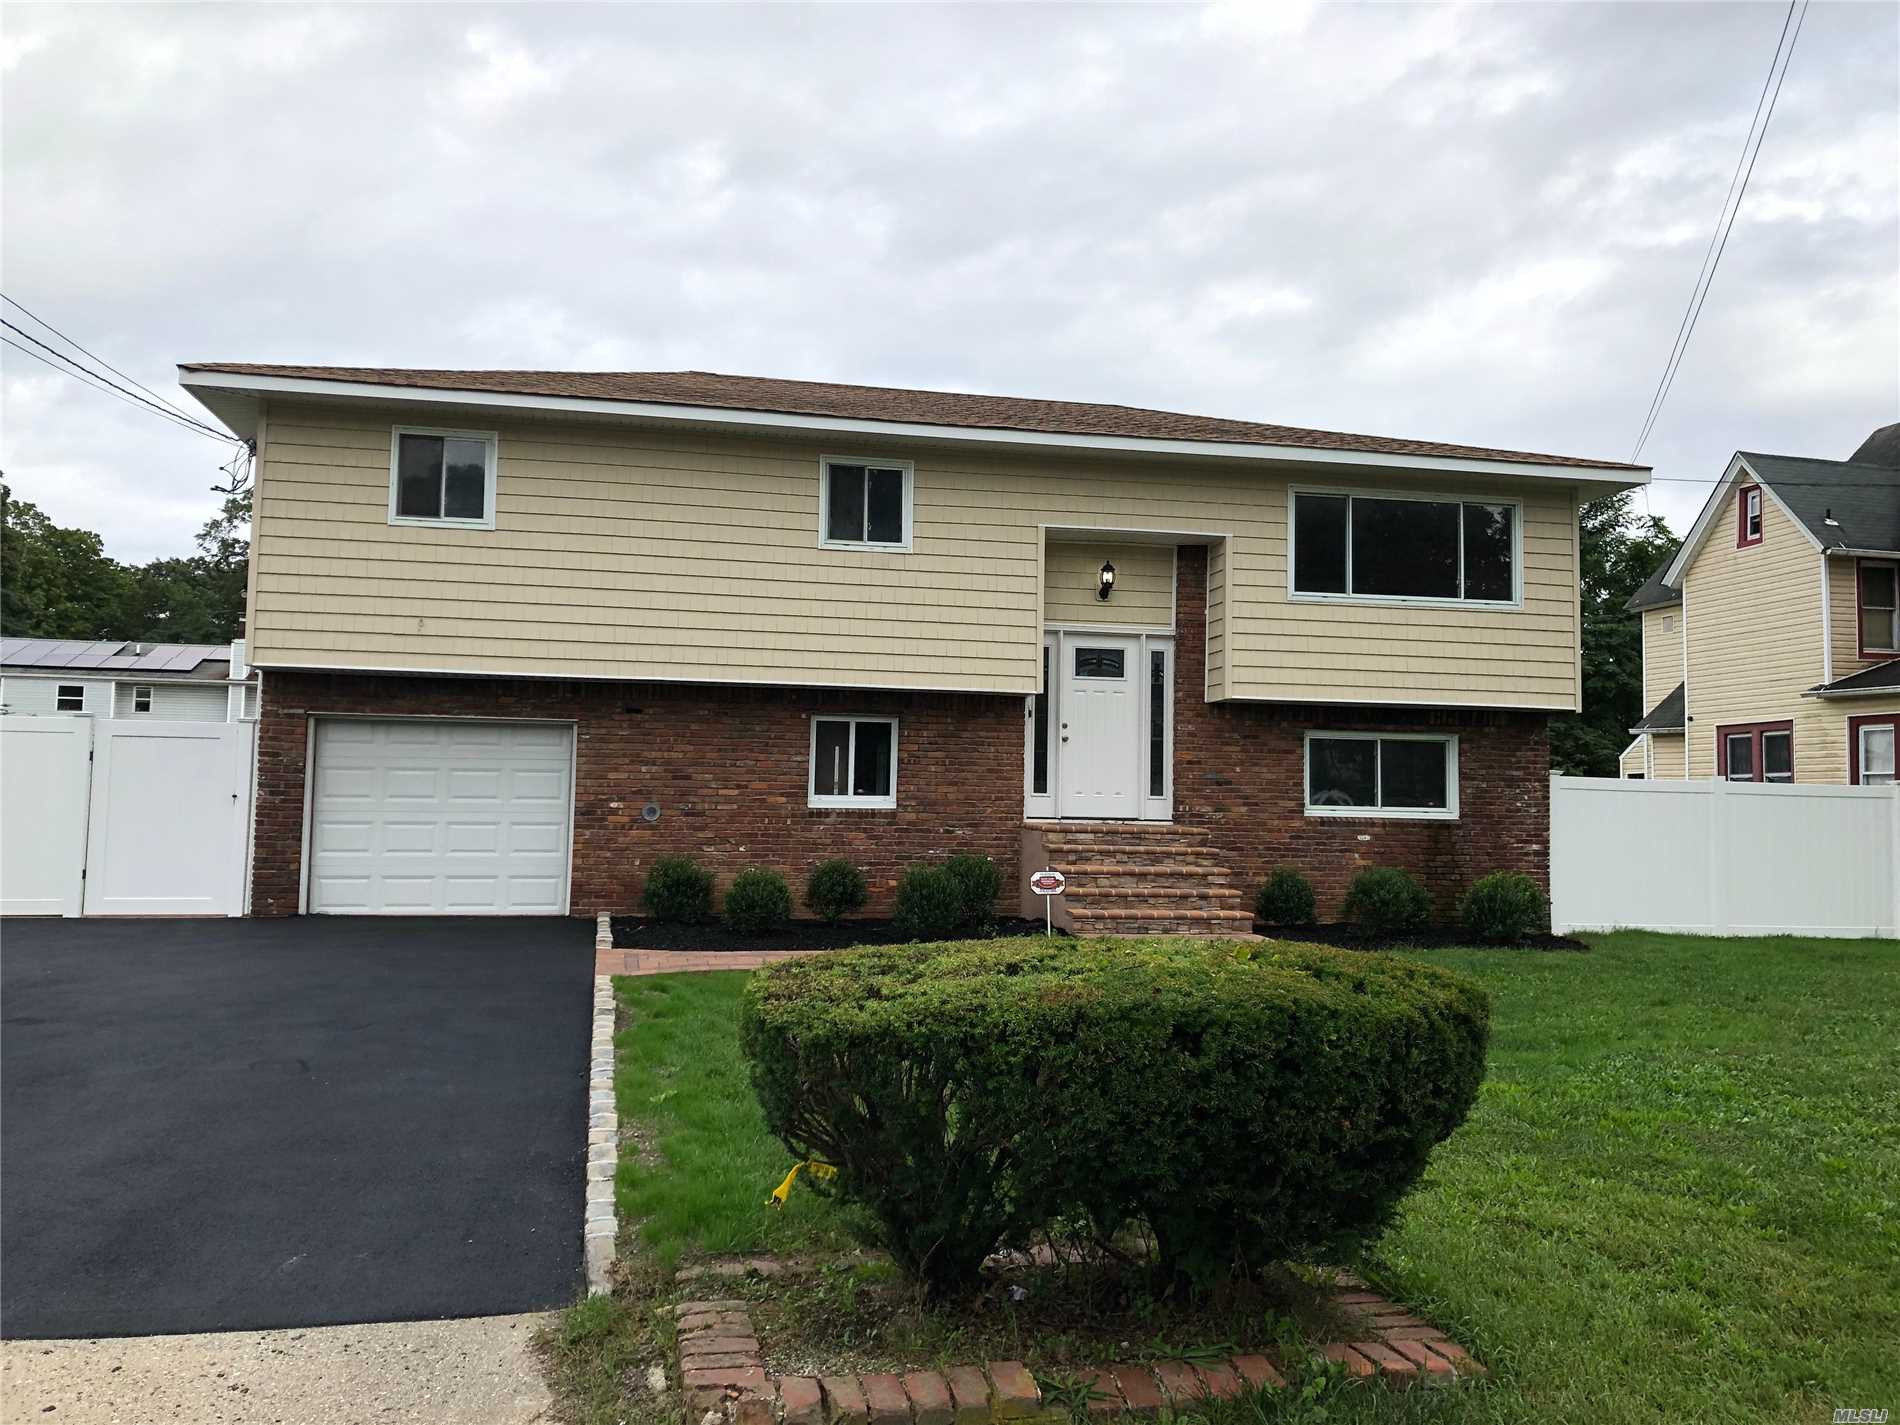 Completely Renovated 4 Bedroom Hi Ranch. New Kitchen W/ Stainless Steel Appliances, New Bathrooms, Beautiful Hardwood Floors, New Carpet. Oversize Property. Must See Home.